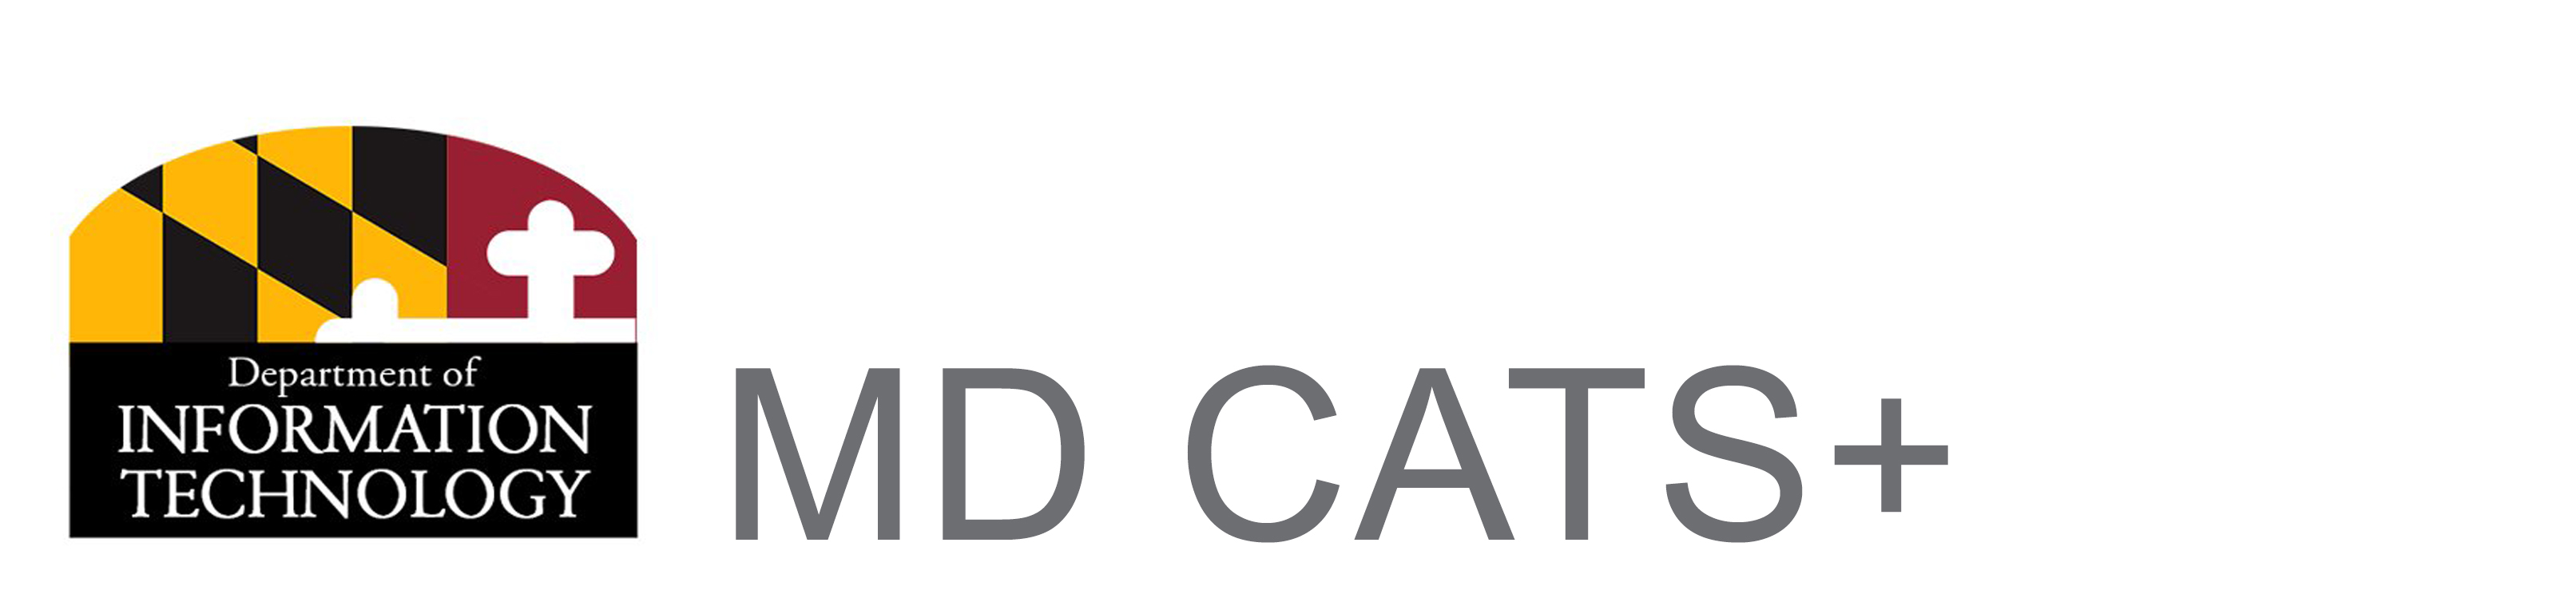 MD CATS+ logo